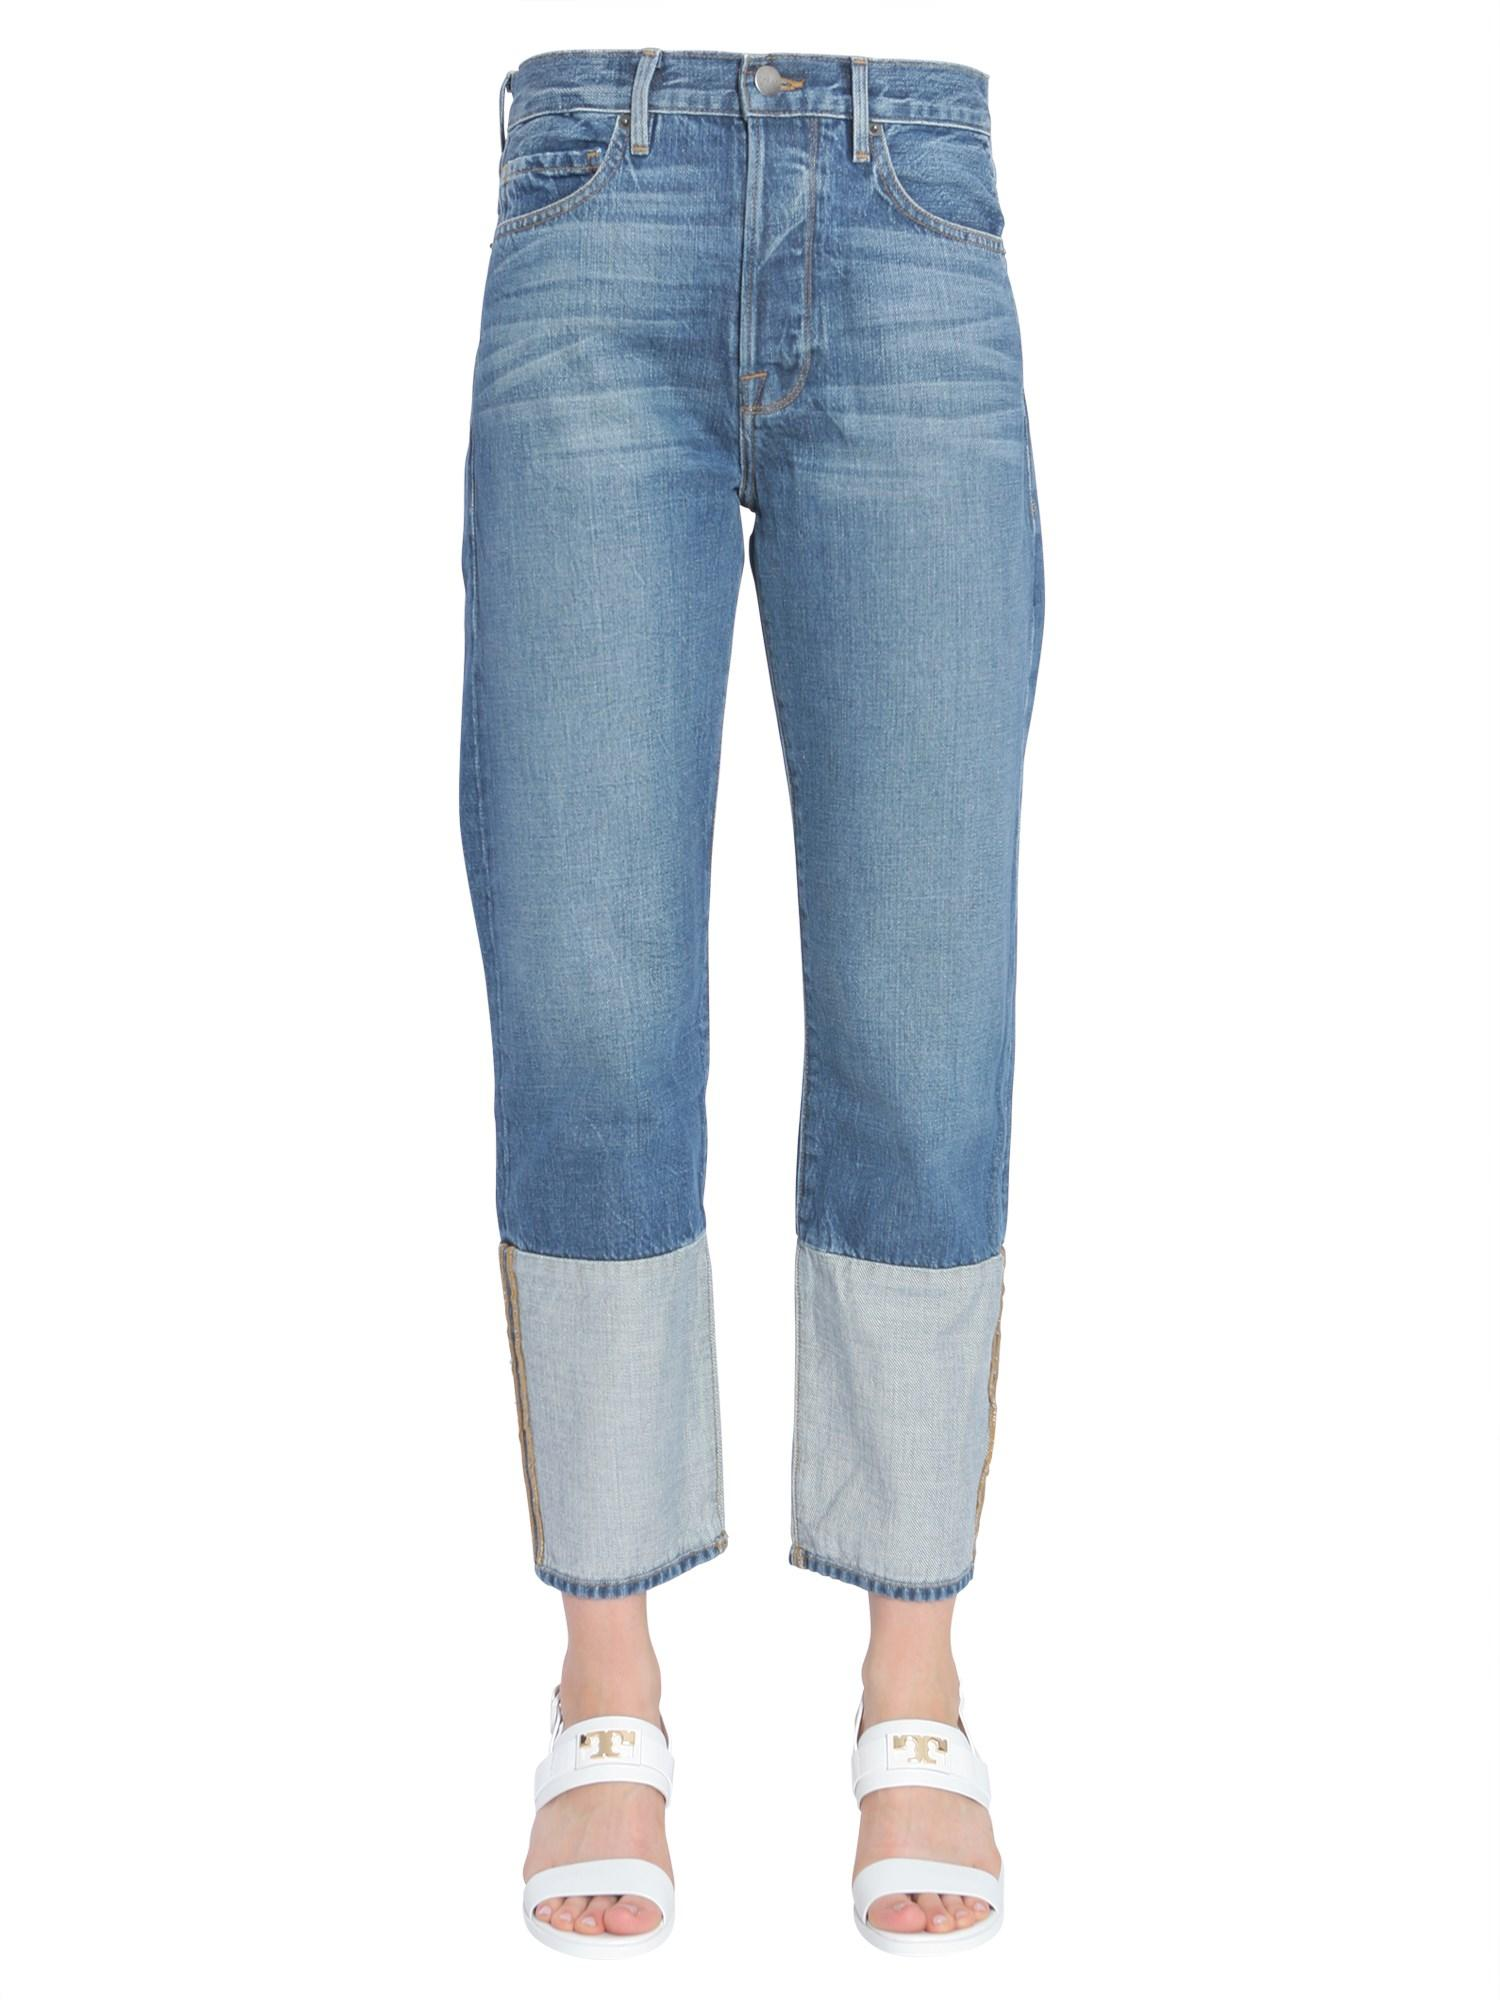 32ab26dc27be Frame Le Original Reverse Jeans In Blue | ModeSens